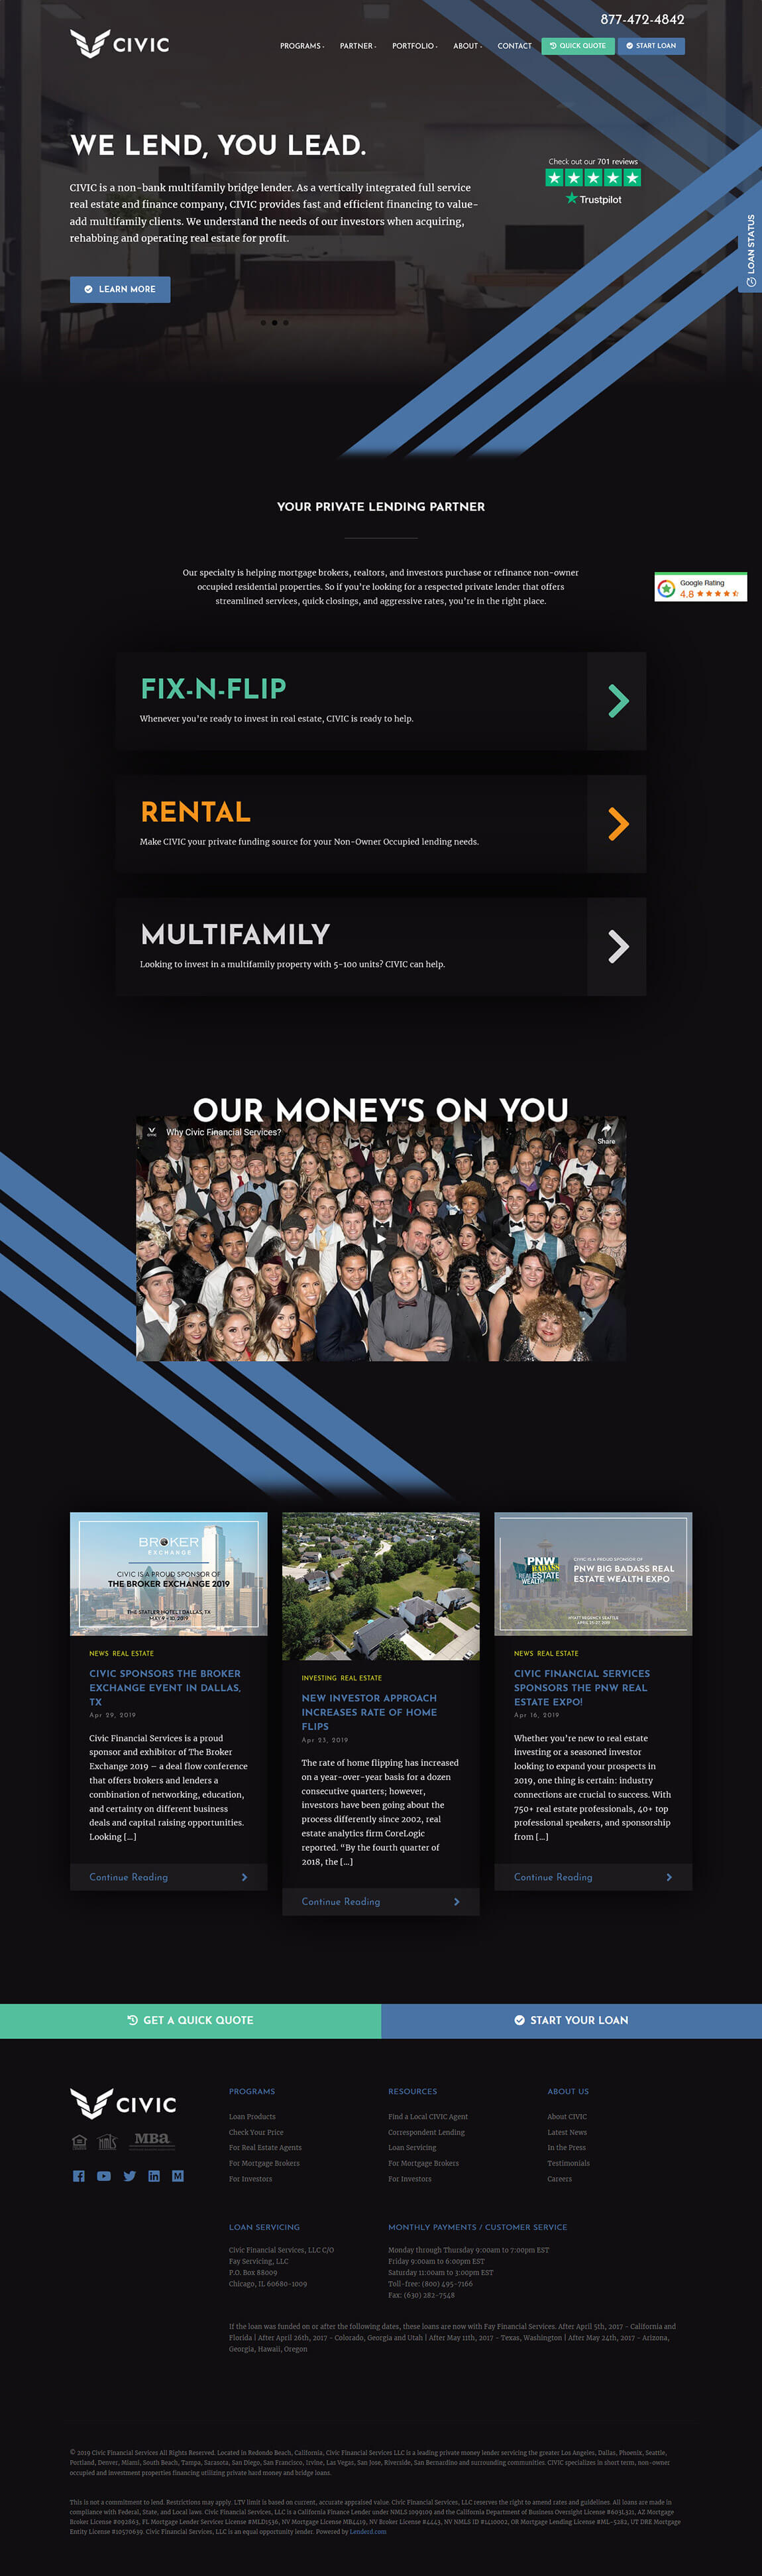 Civic Financial Website Designers